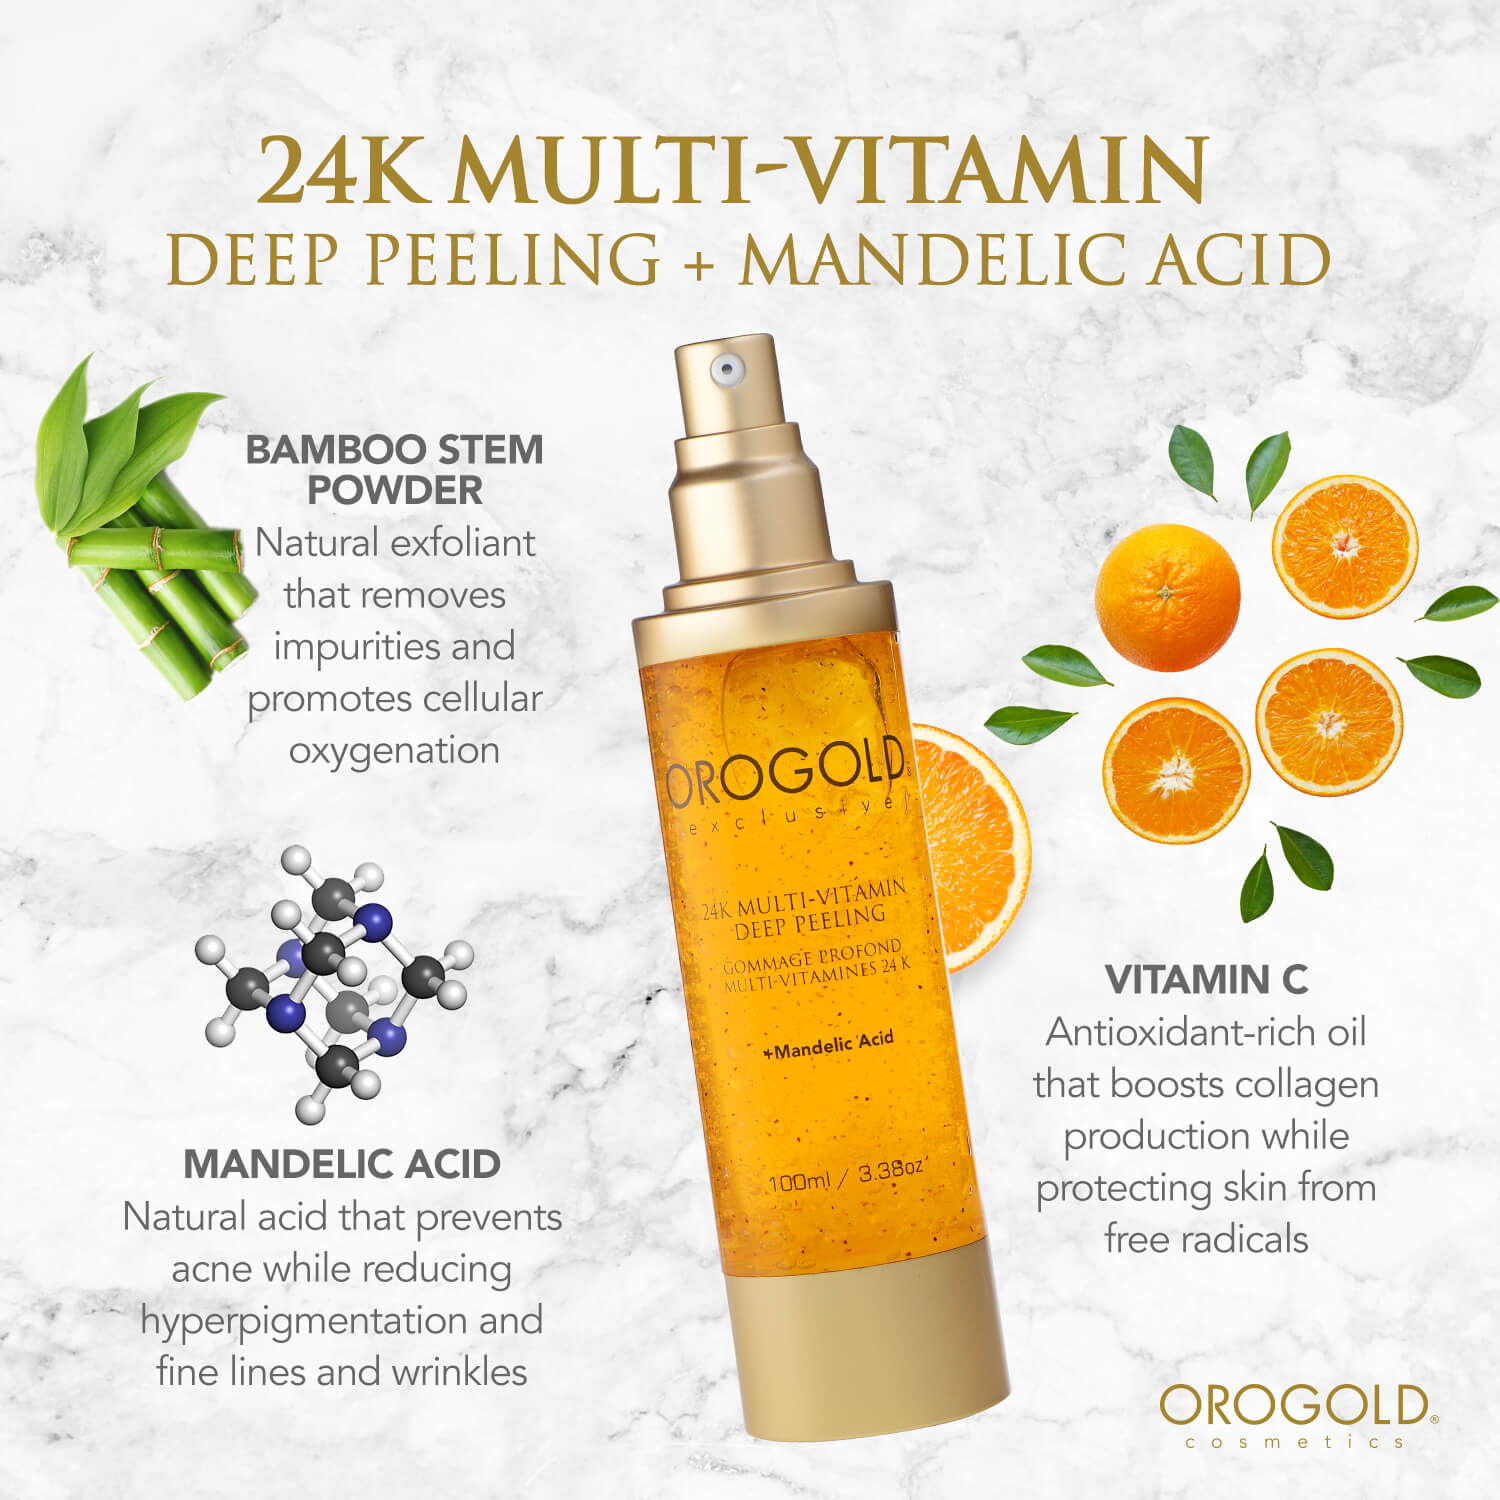 Infographic about the OROGOLD 24K Multi-Vitamin Deep Peeling